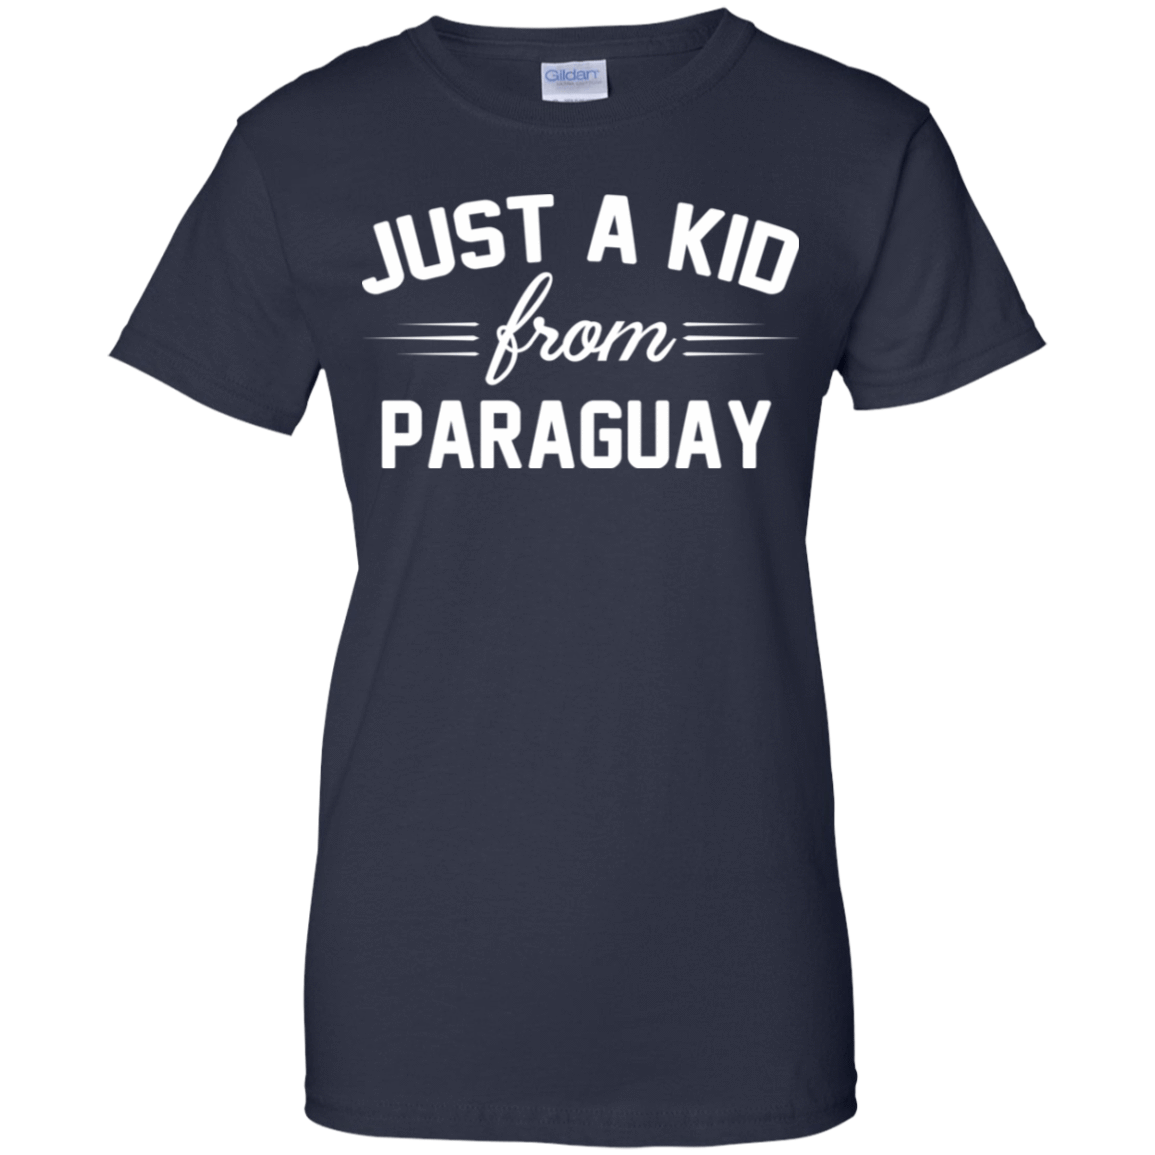 Just a Kid Store | Paraguay T-Shirts, Hoodie, Tank 939-9259-72091581-44765 - Tee Ript